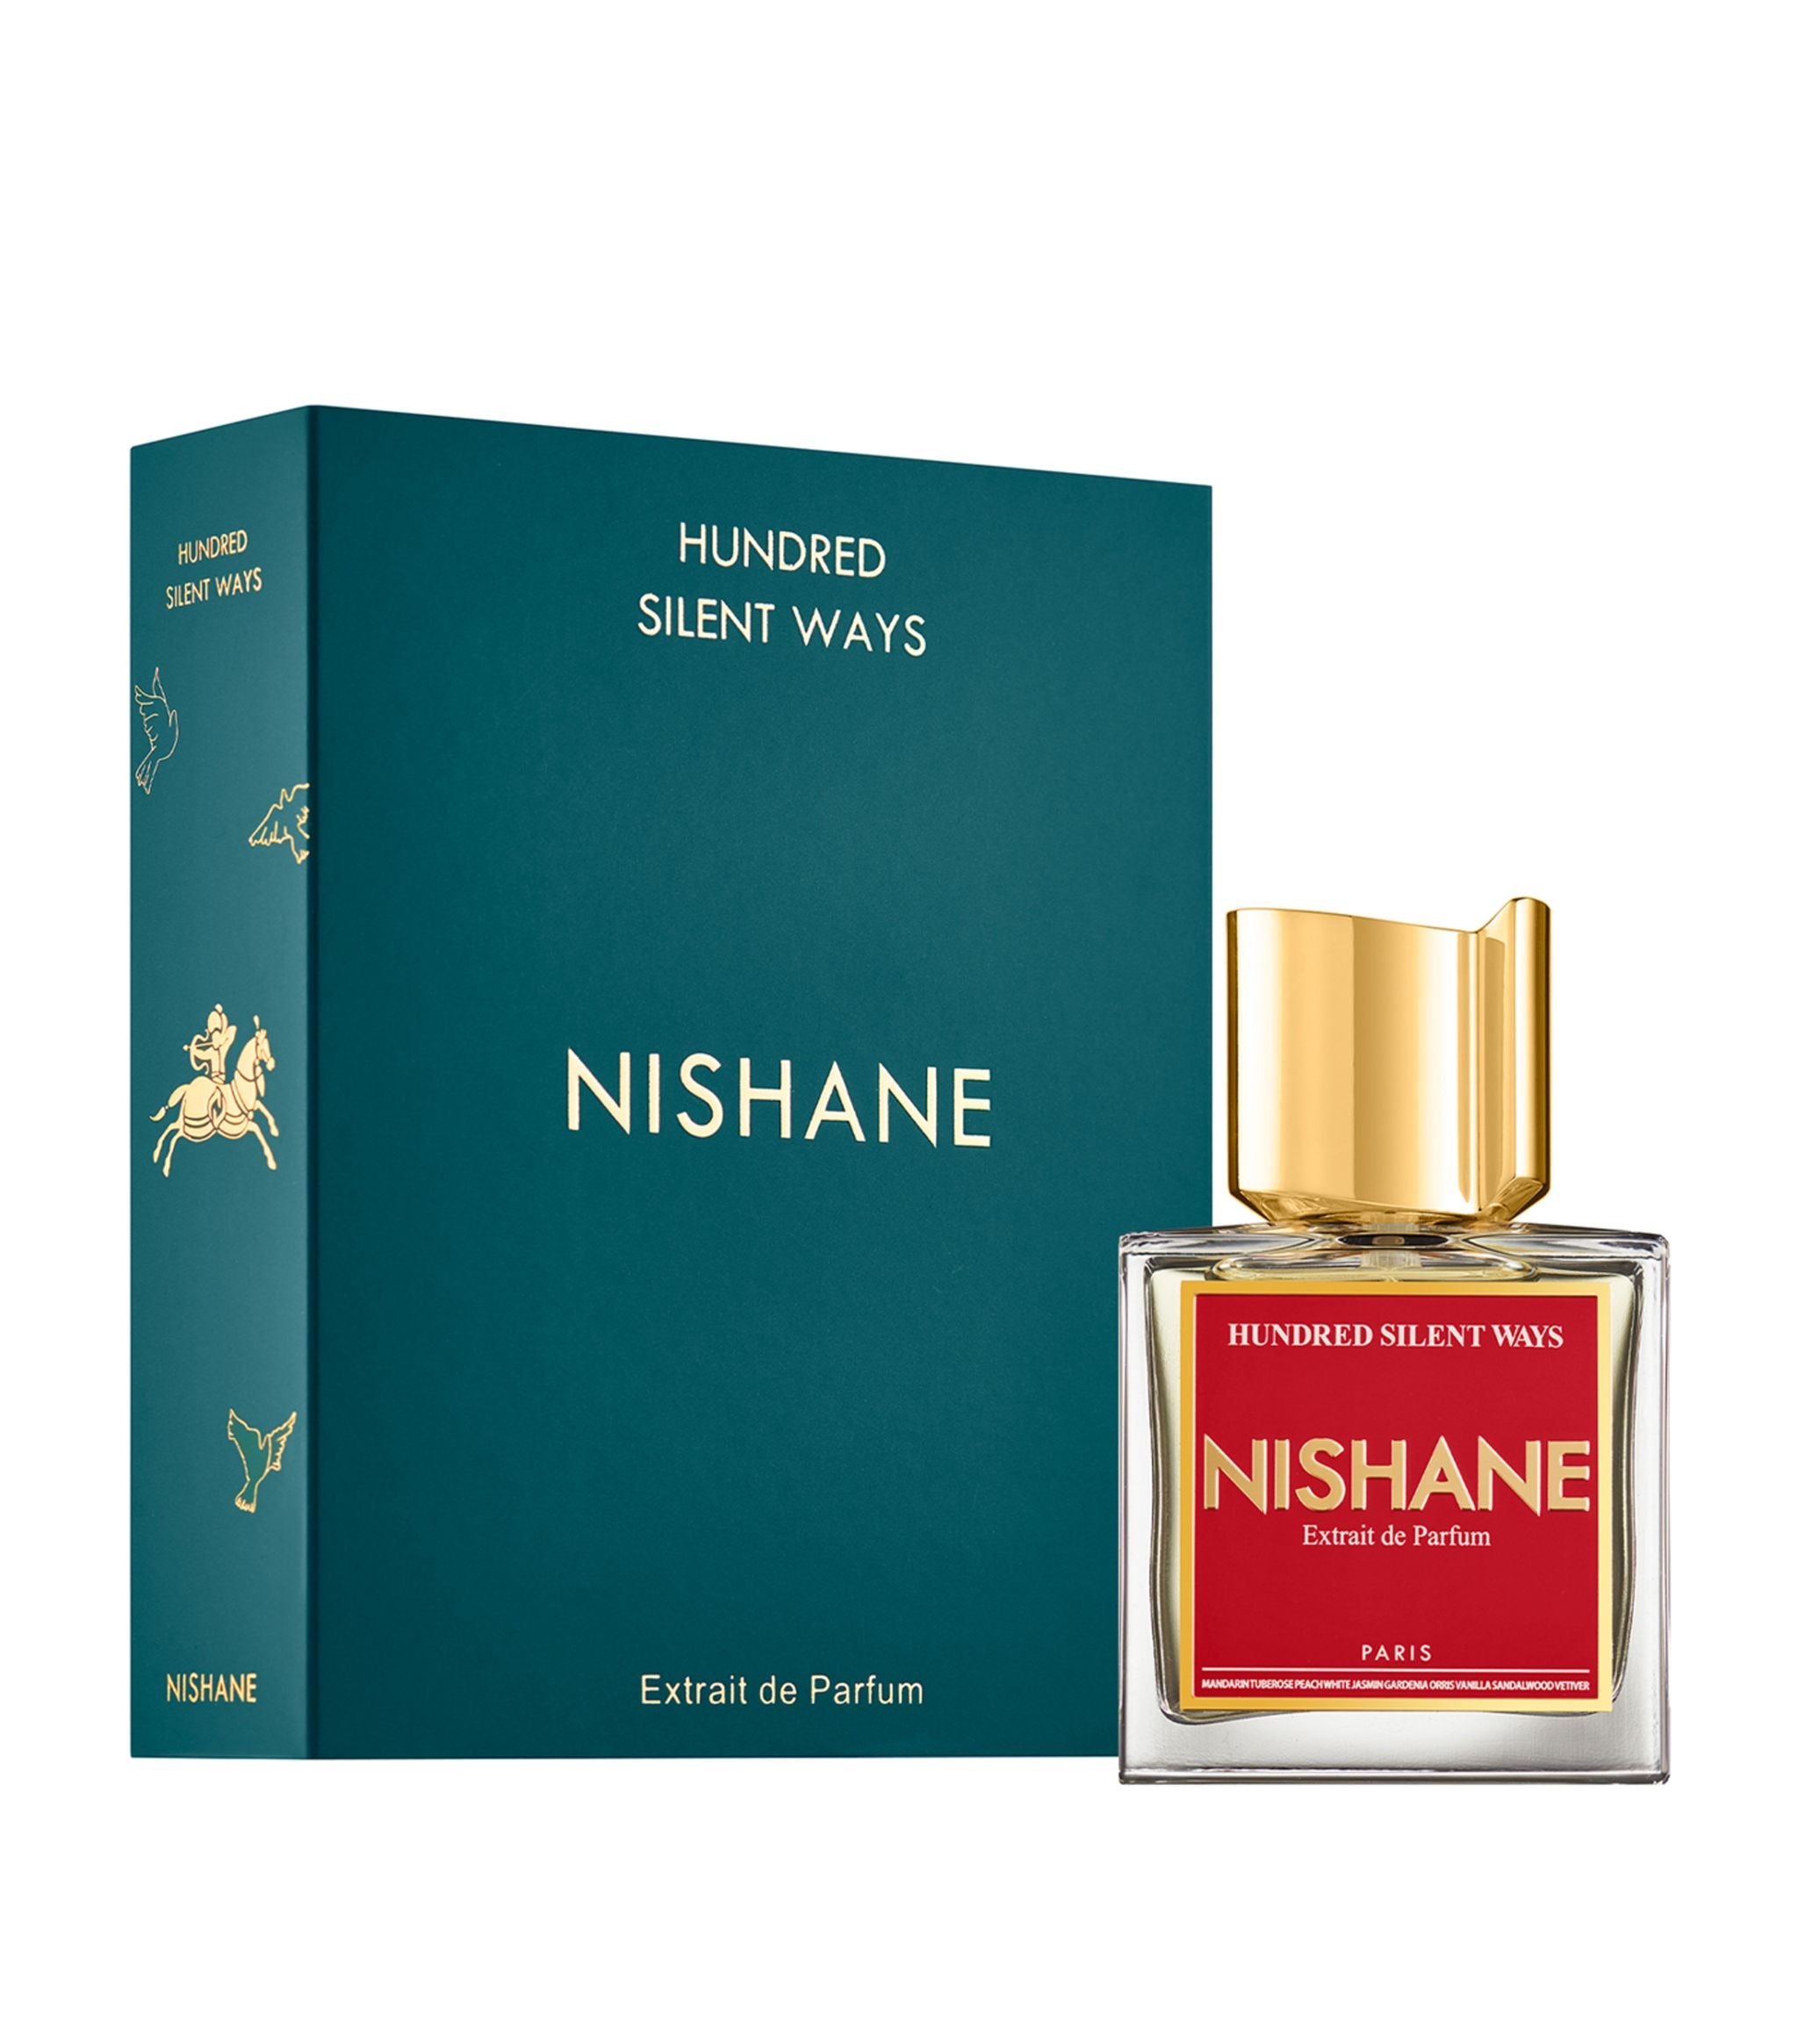 Hundred Silent Ways Extract de Parfum by Nishane